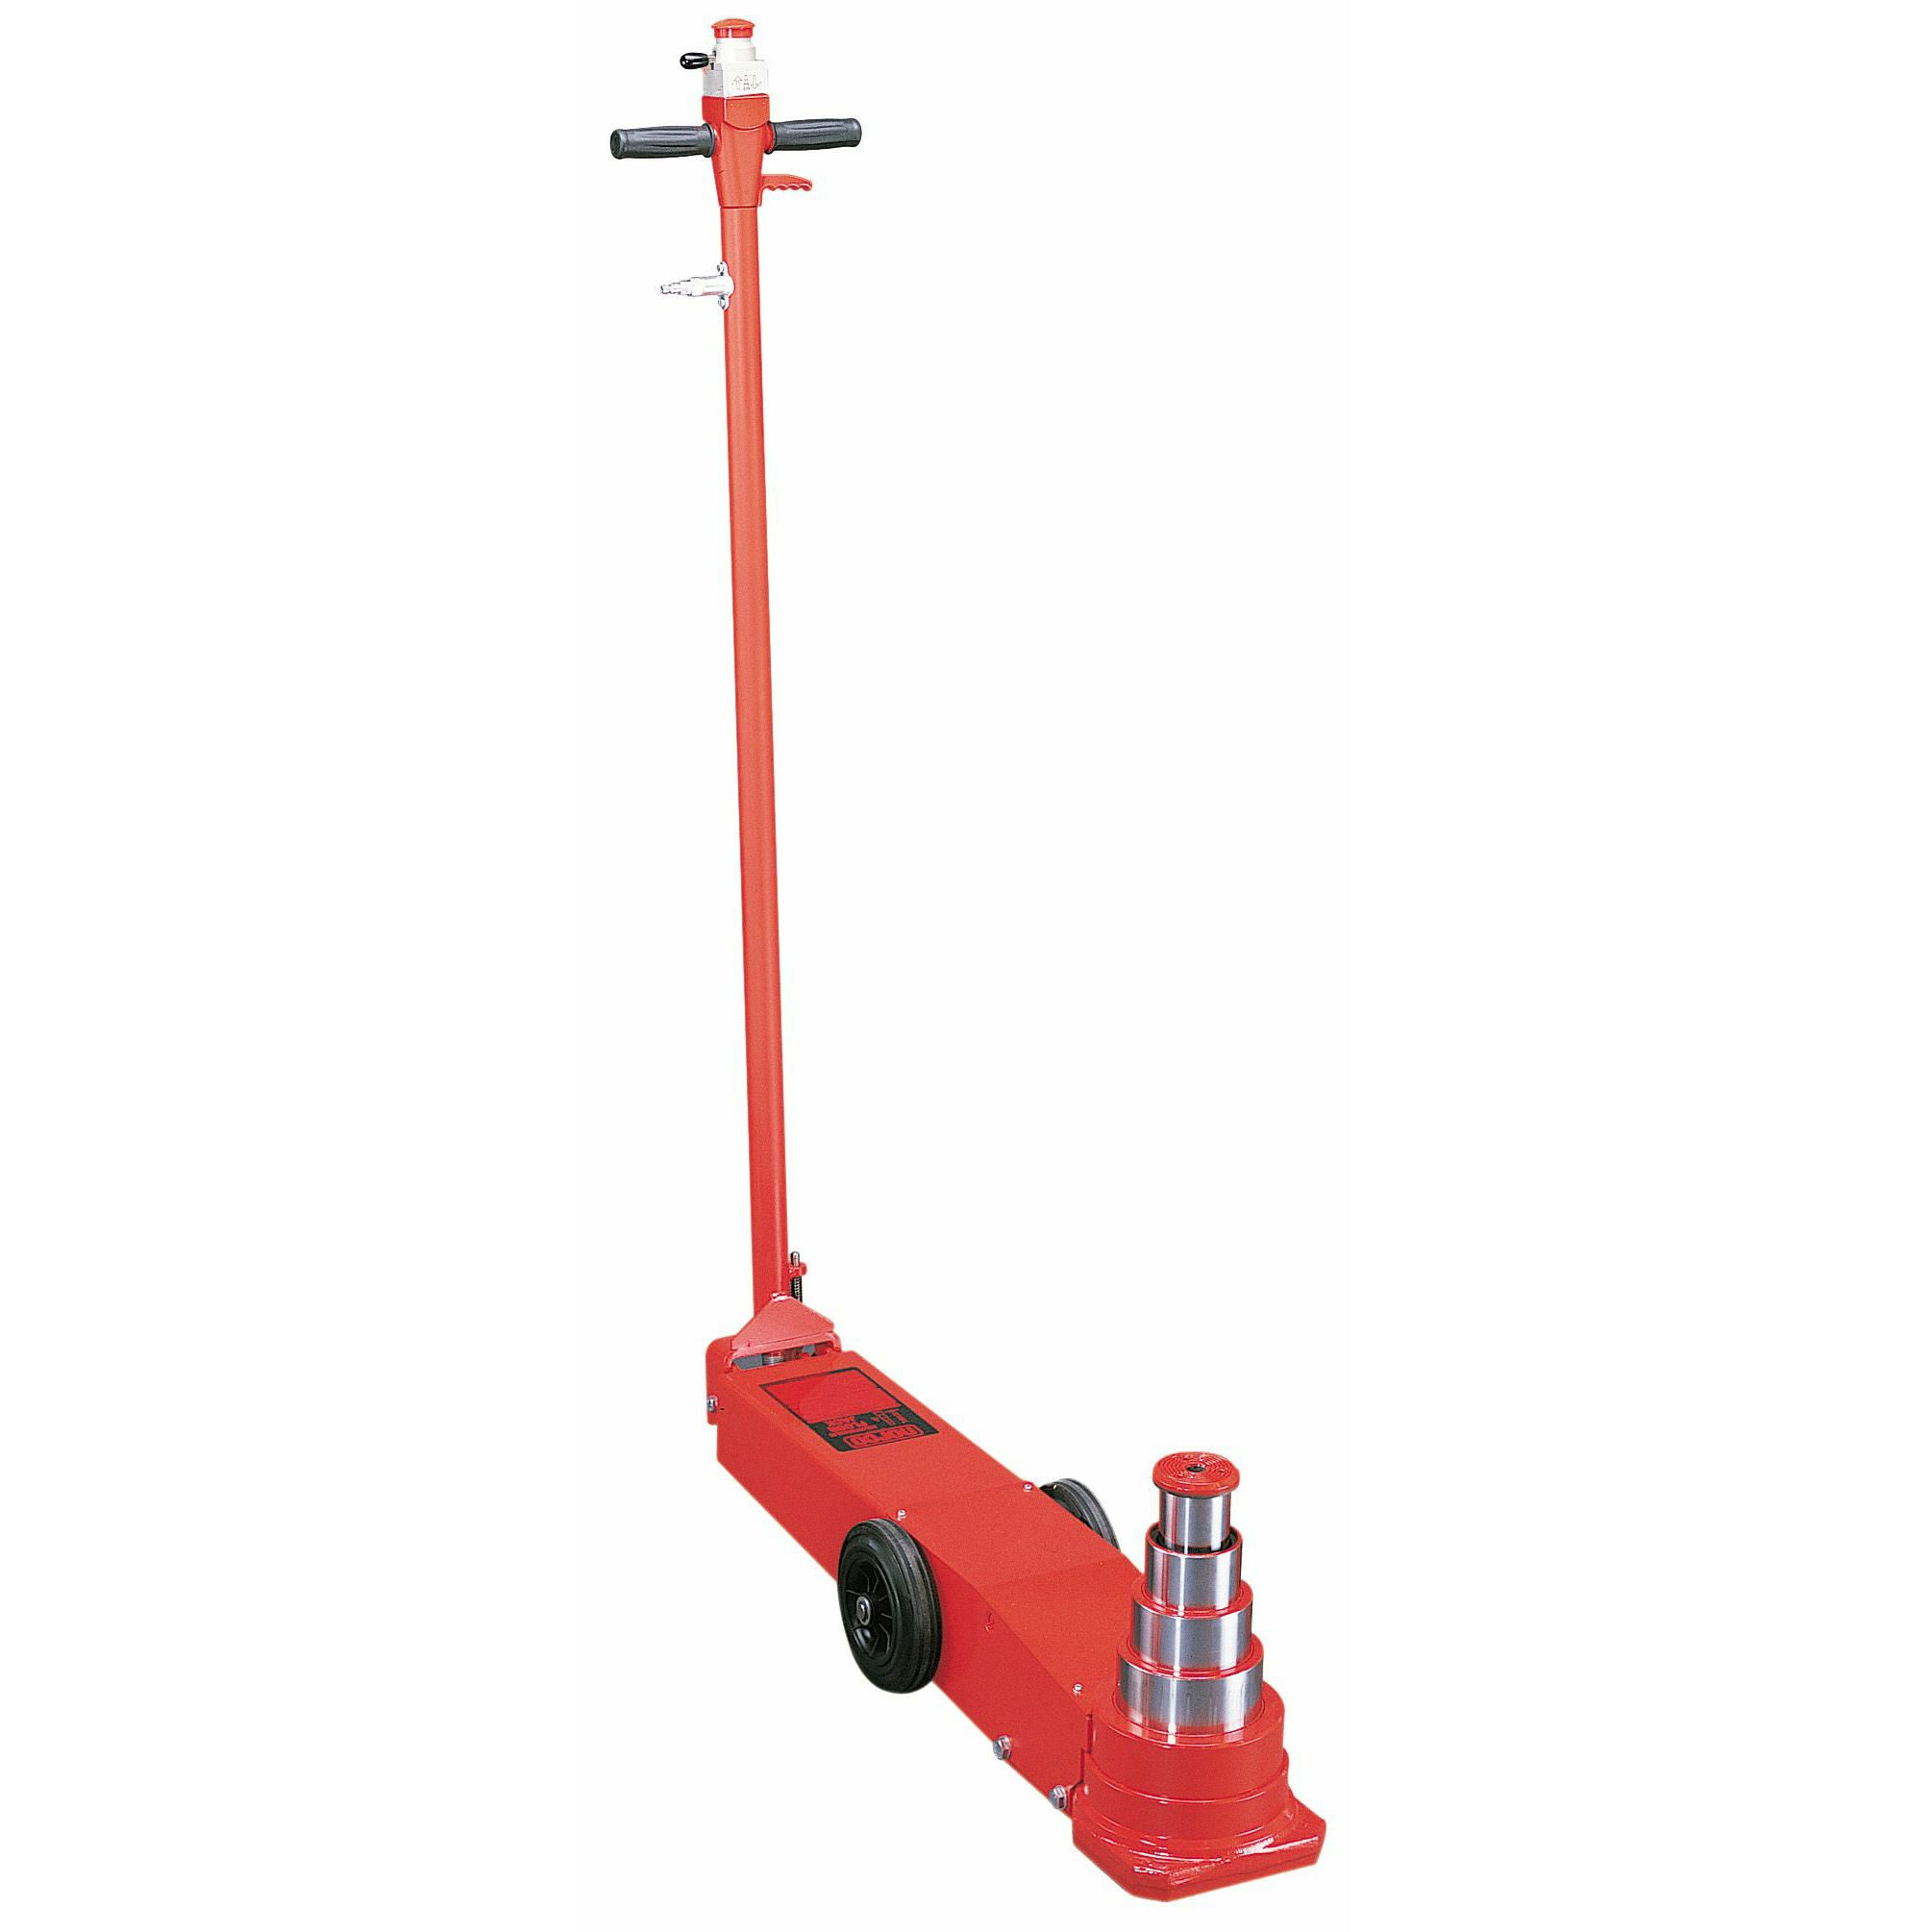 norco 72212 55 37 23 12 ton air hydraulic floor jack